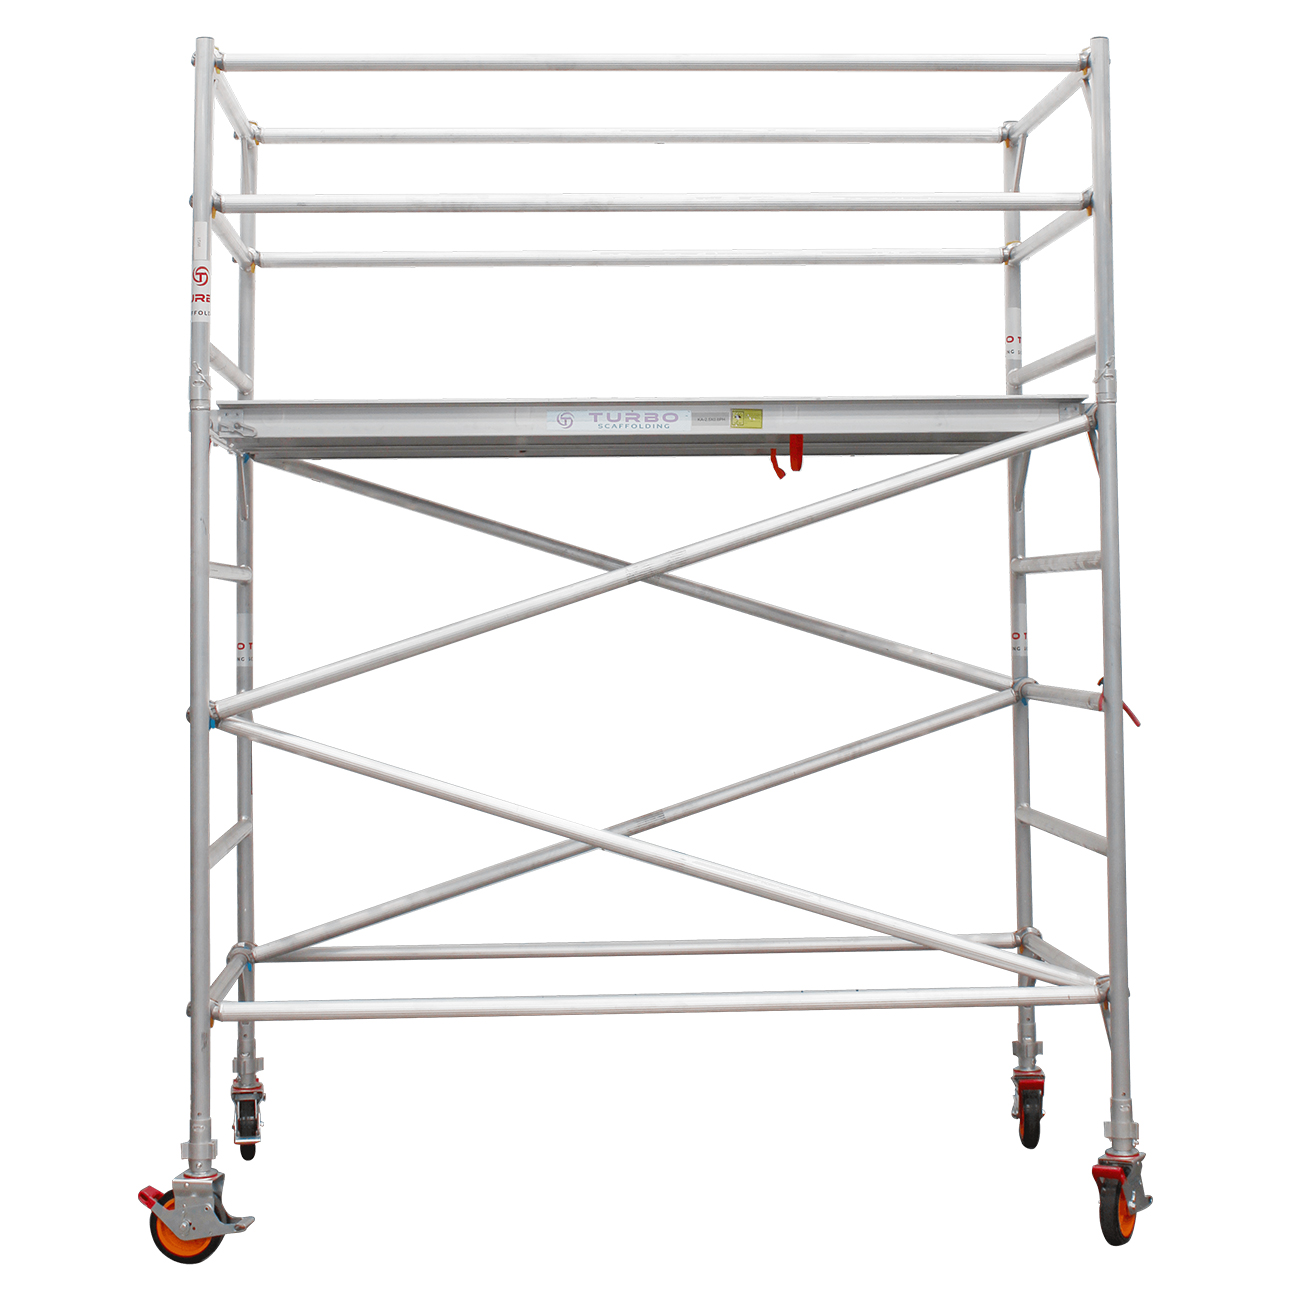 2.3m – 2.6m Wide Aluminium Mobile Scaffold Tower (Standing Height)